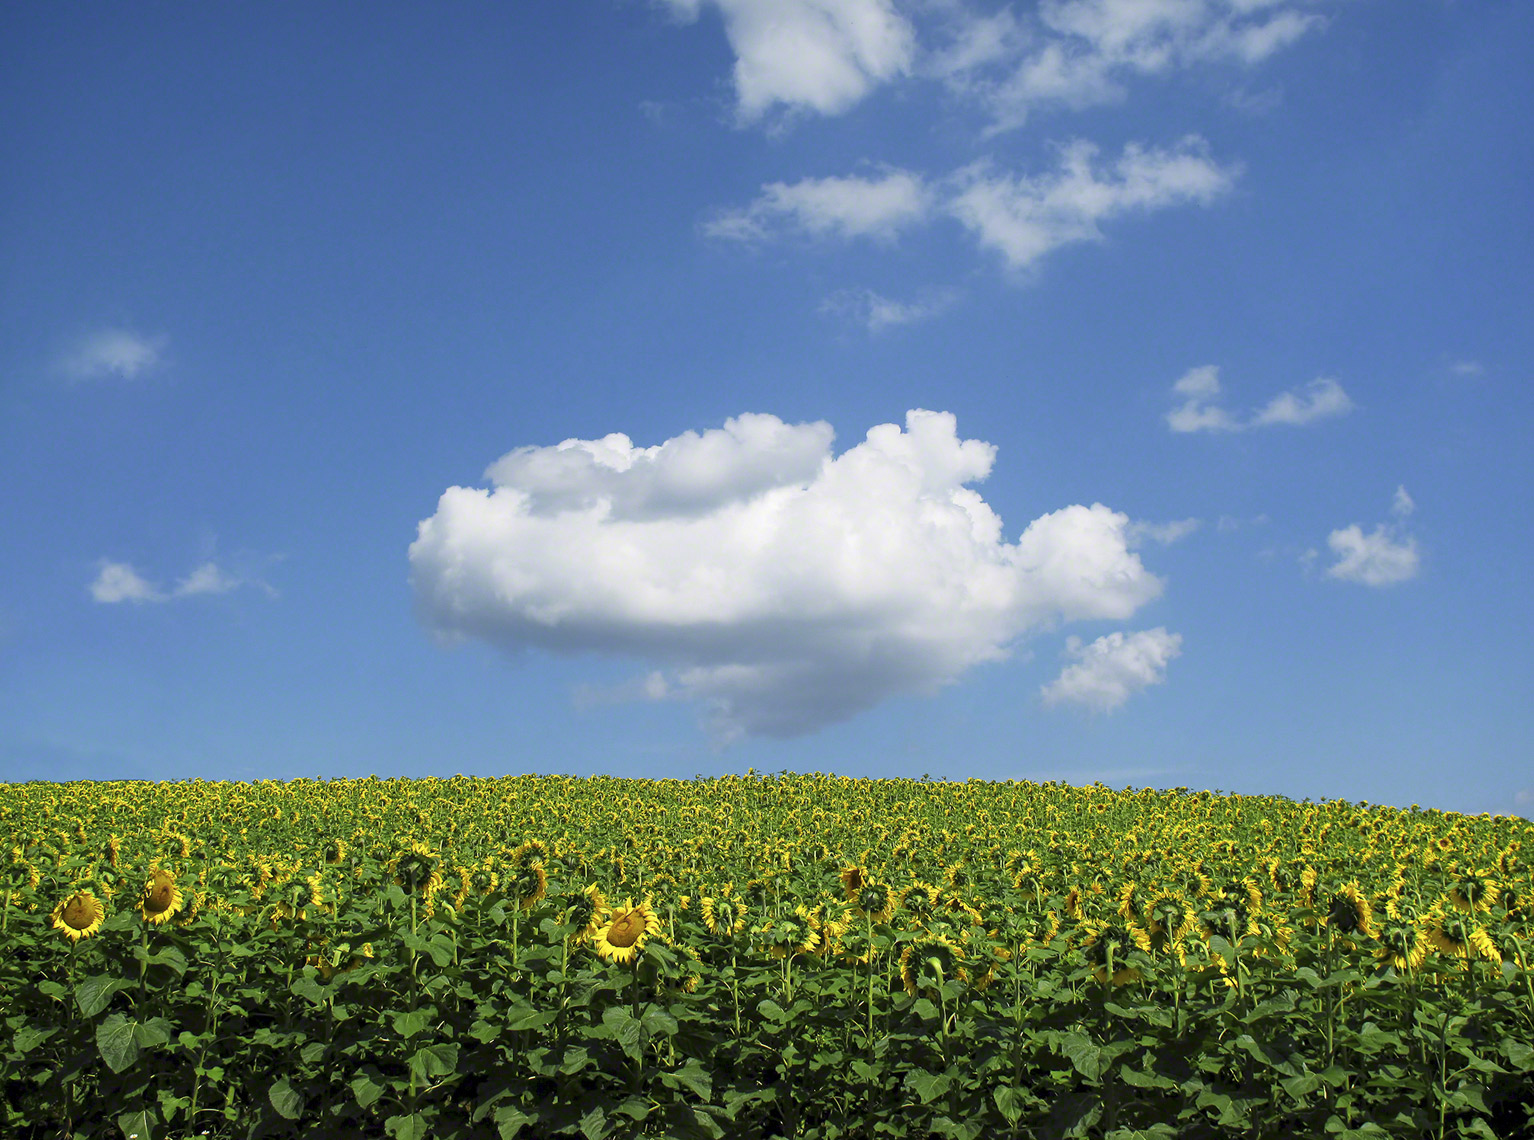 ONE CLOUD OVER SUNFLOWERS